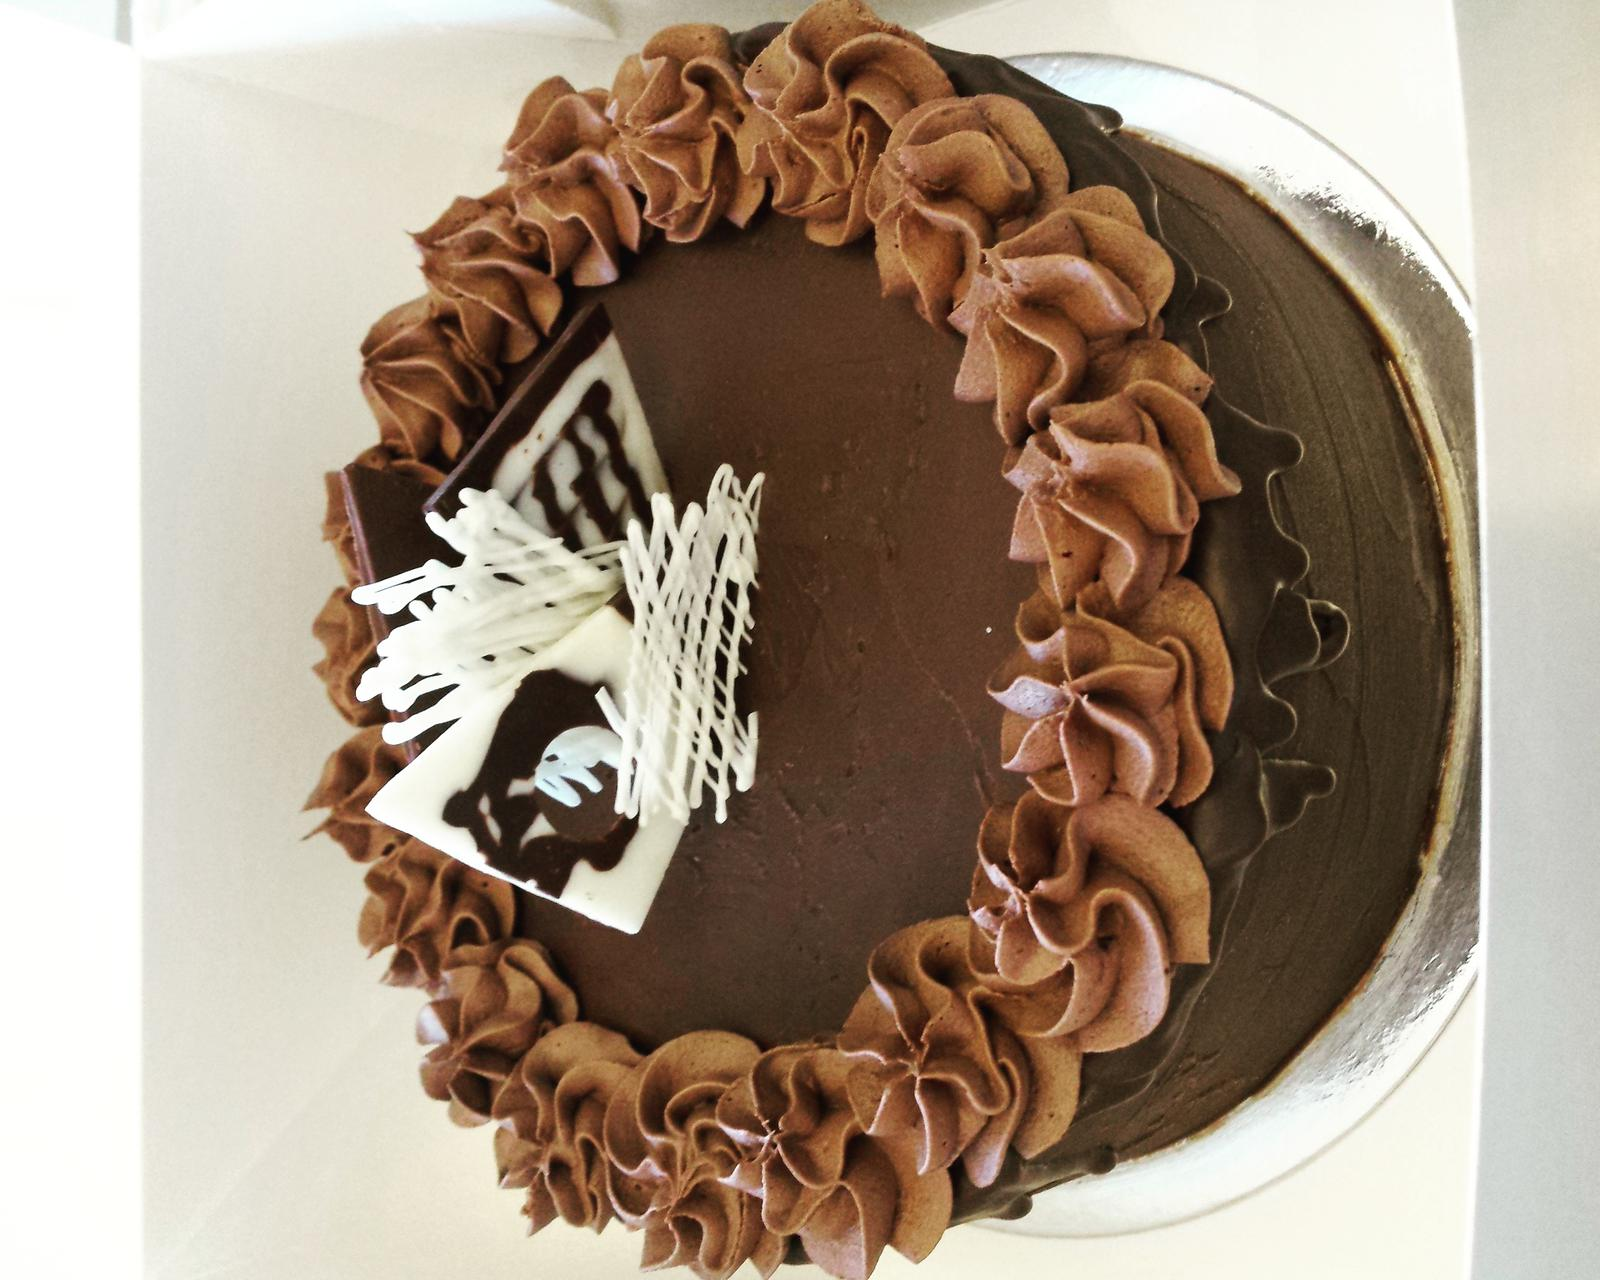 Chocolate Mudcake sold as sliced or whole